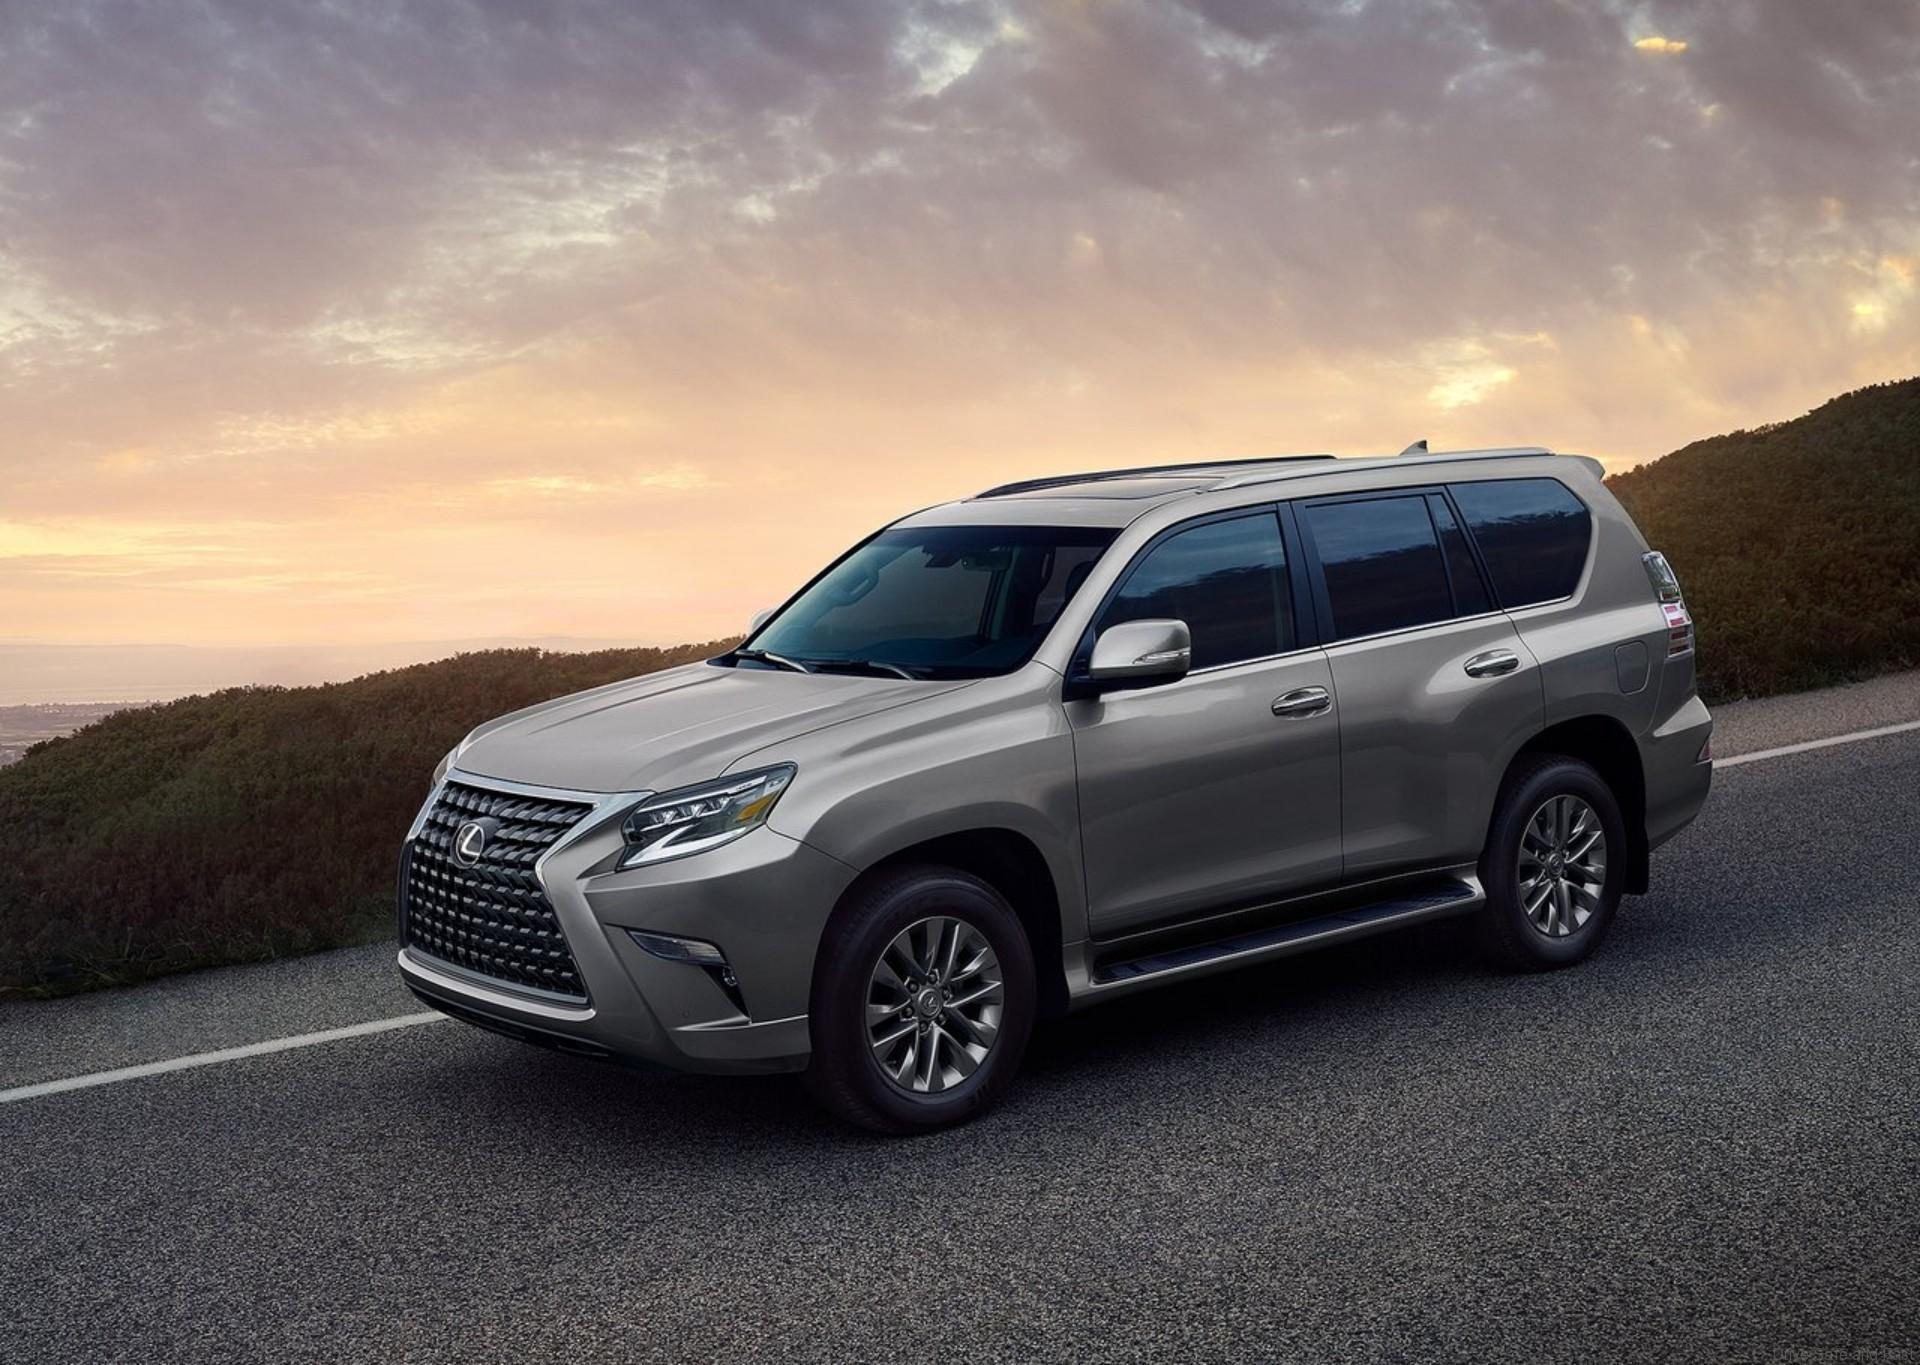 Used Lexus Gx >> US Market Lexus GX 460 Gets a 2020 Model Update | DSF.my